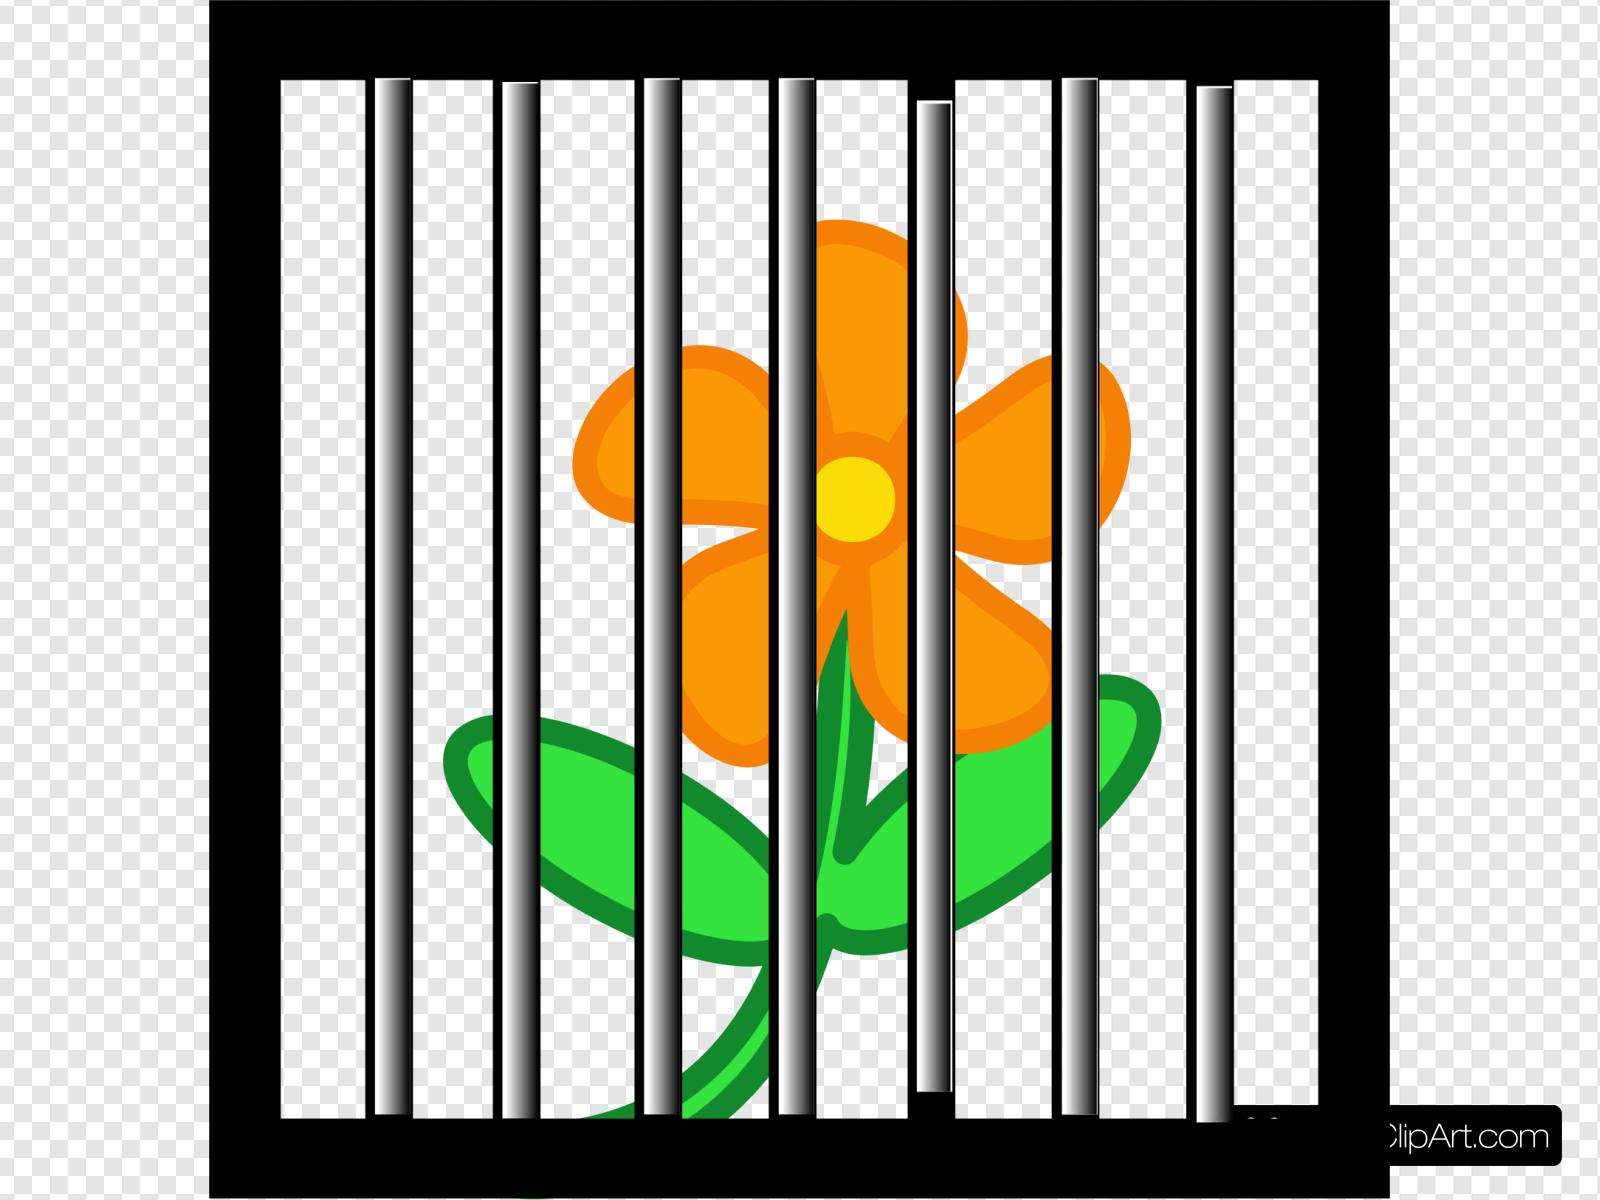 Flower Behind Bars Clip art, Icon and SVG.